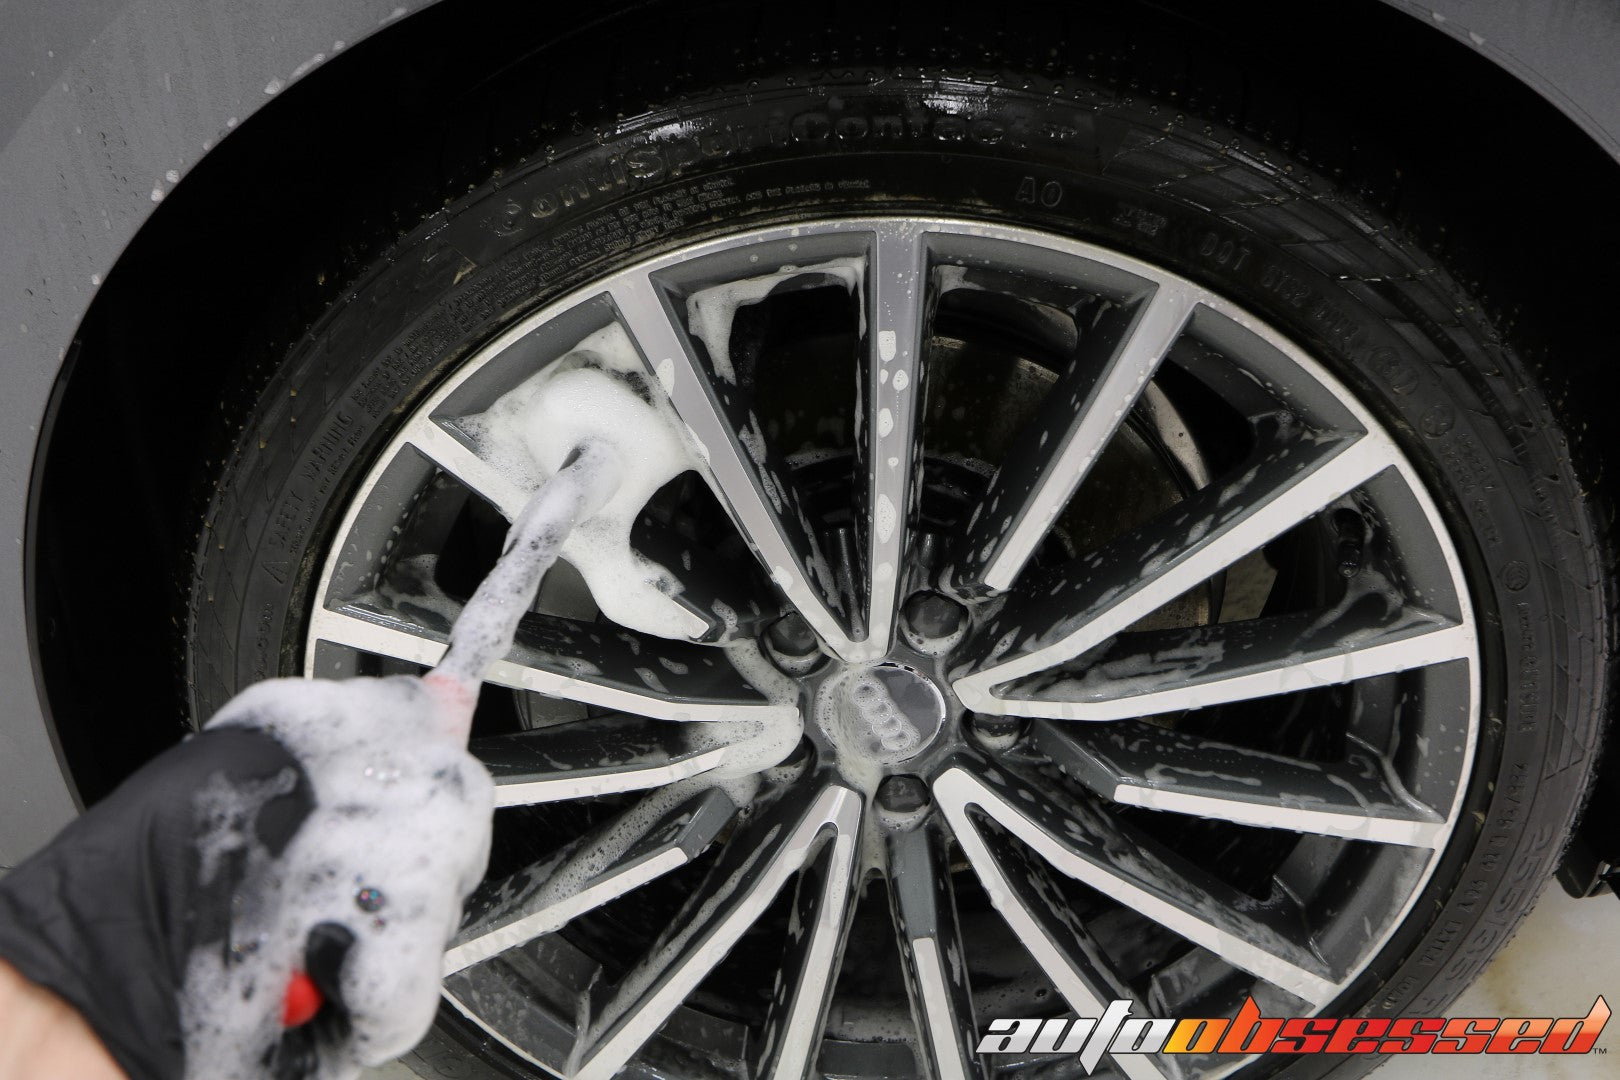 2020 Audi S5 Wheel Brushes Wheel Cleaner - Auto Obsessed